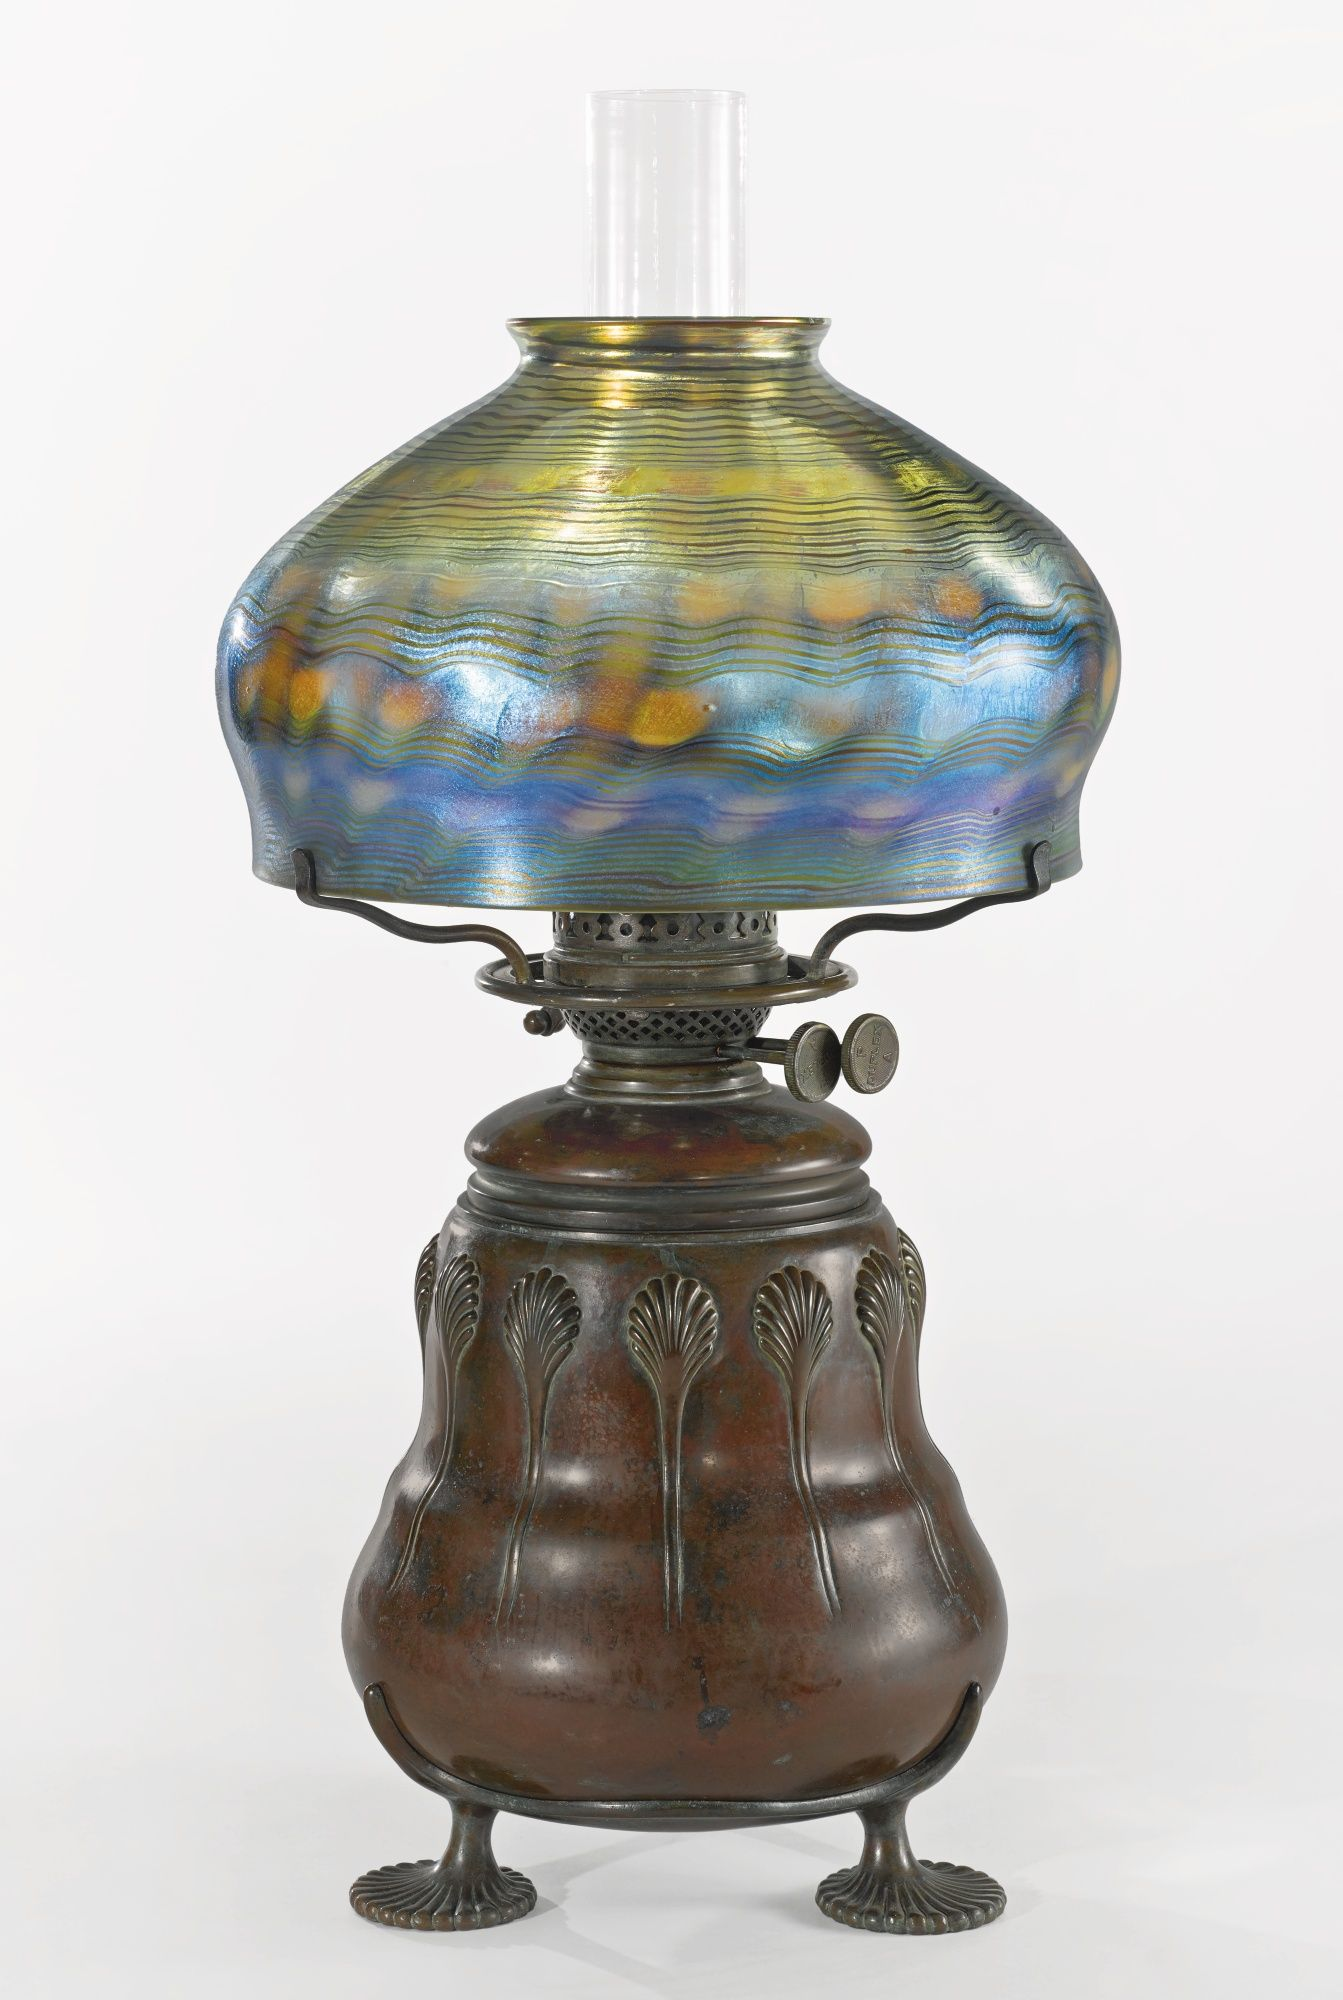 Tiffany studios an early oil table lamp shade engraved s5183 tiffany studios an early oil table lamp shade engraved s5183 underside of oil font impressed geotapseo Gallery